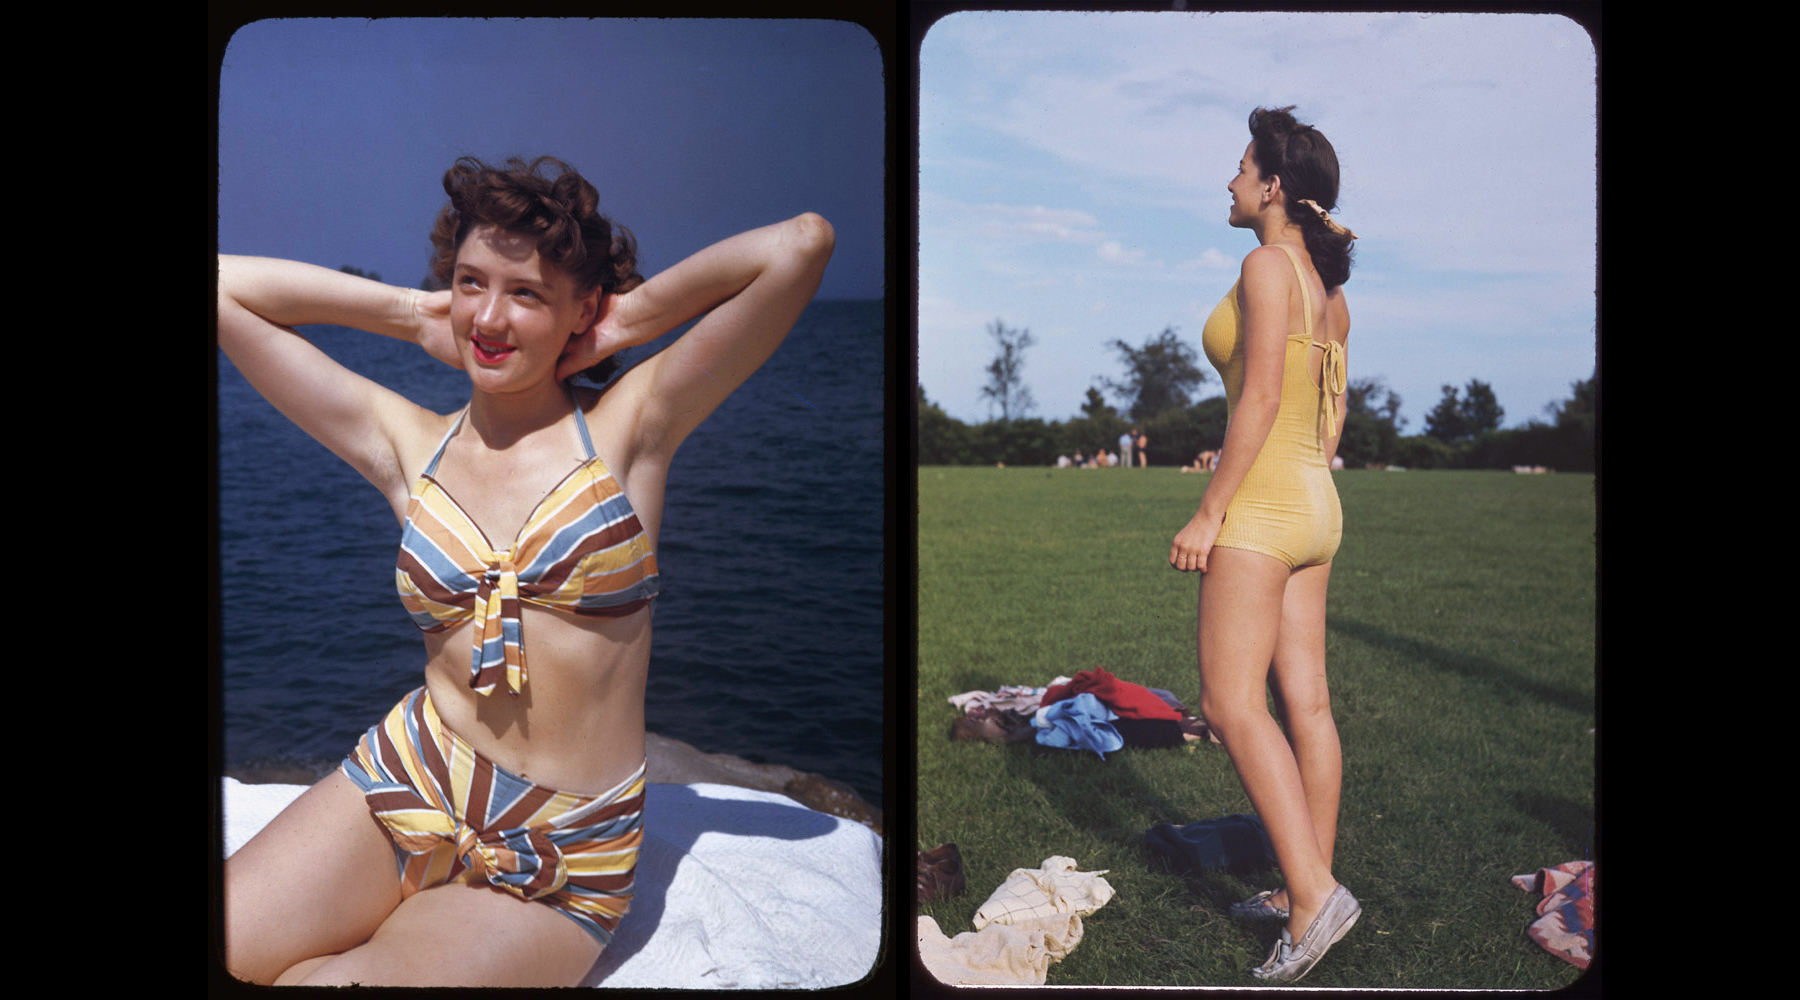 (Left) Jo, a United Airlines Stewardess at Promontory Point, September 6, 1945. (Right) Promontory Point, September 7,1941.